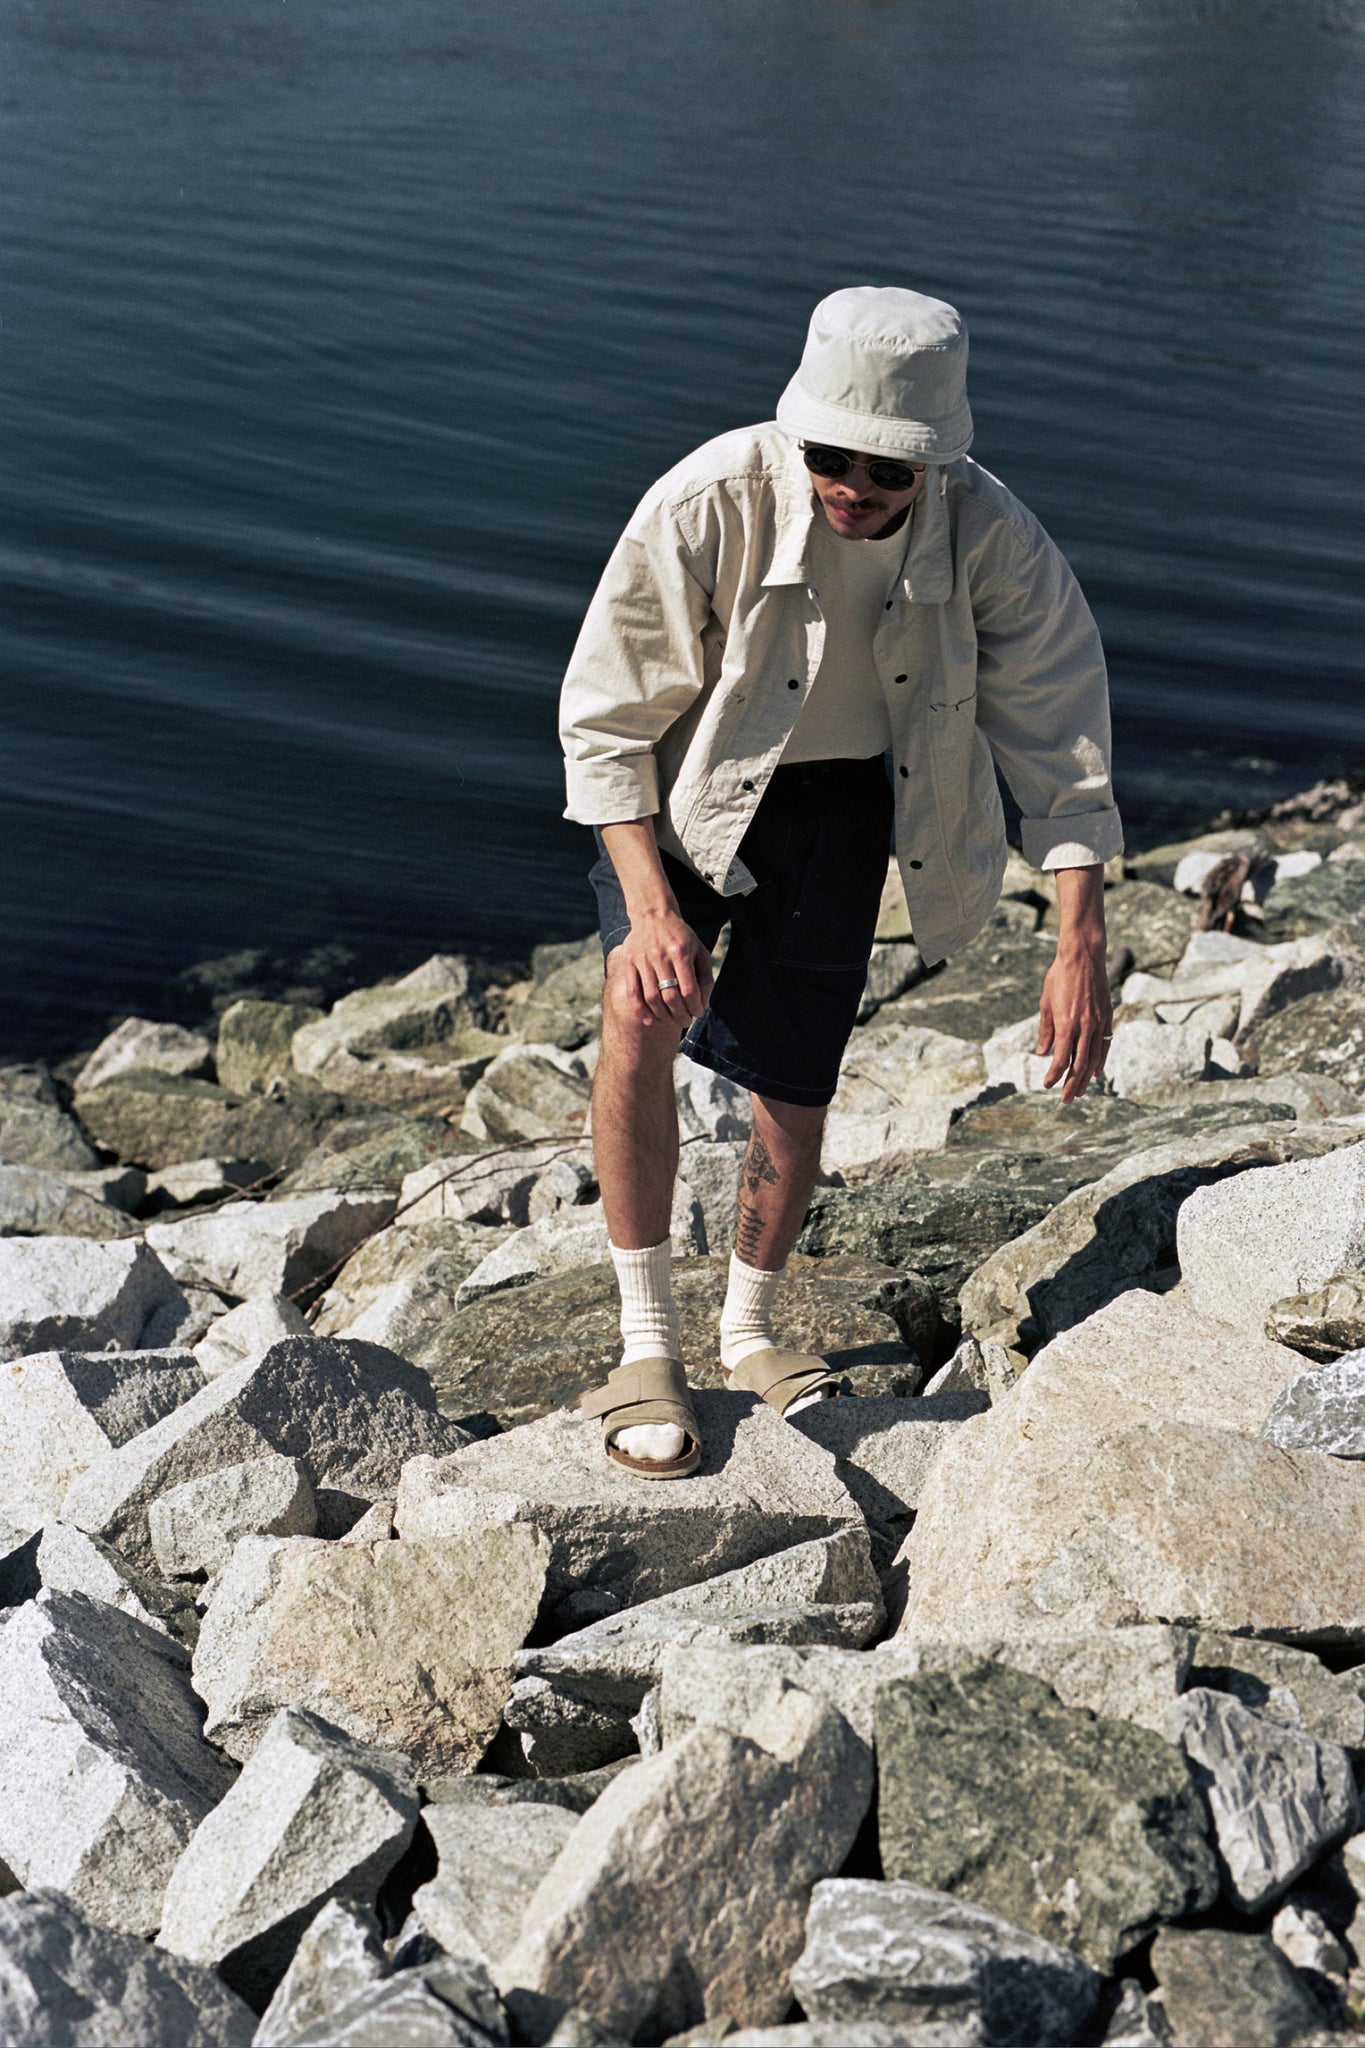 Found Feather SS21 Engineered Garments Birkenstock Ends and Means Calculus Victoria BC Canada